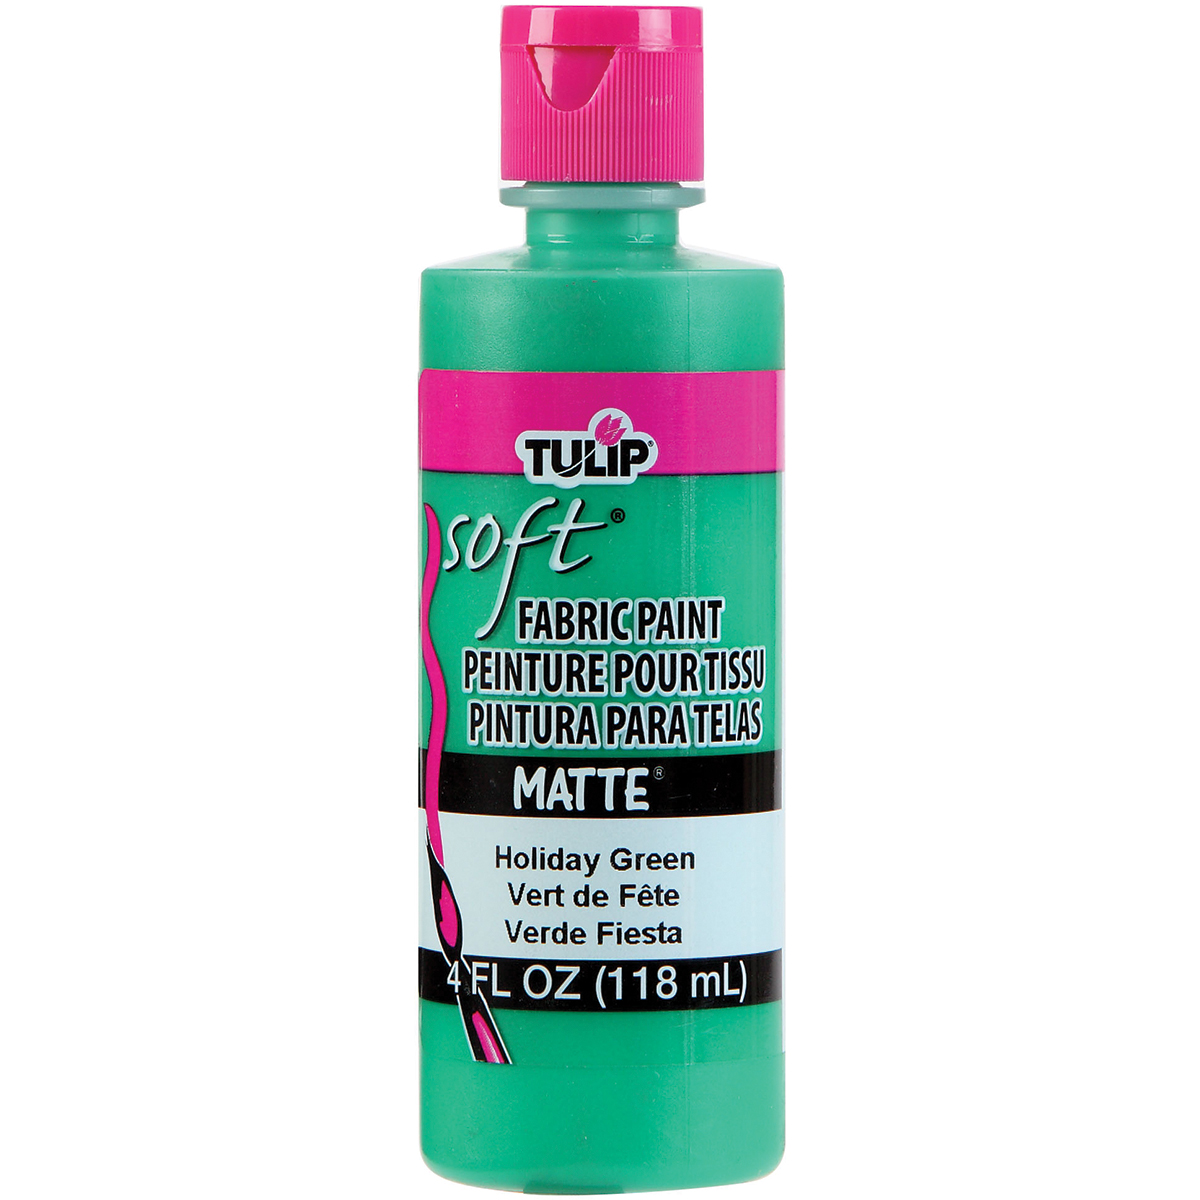 Tulip Soft Fabric Paint 4oz-Holiday Green Matte